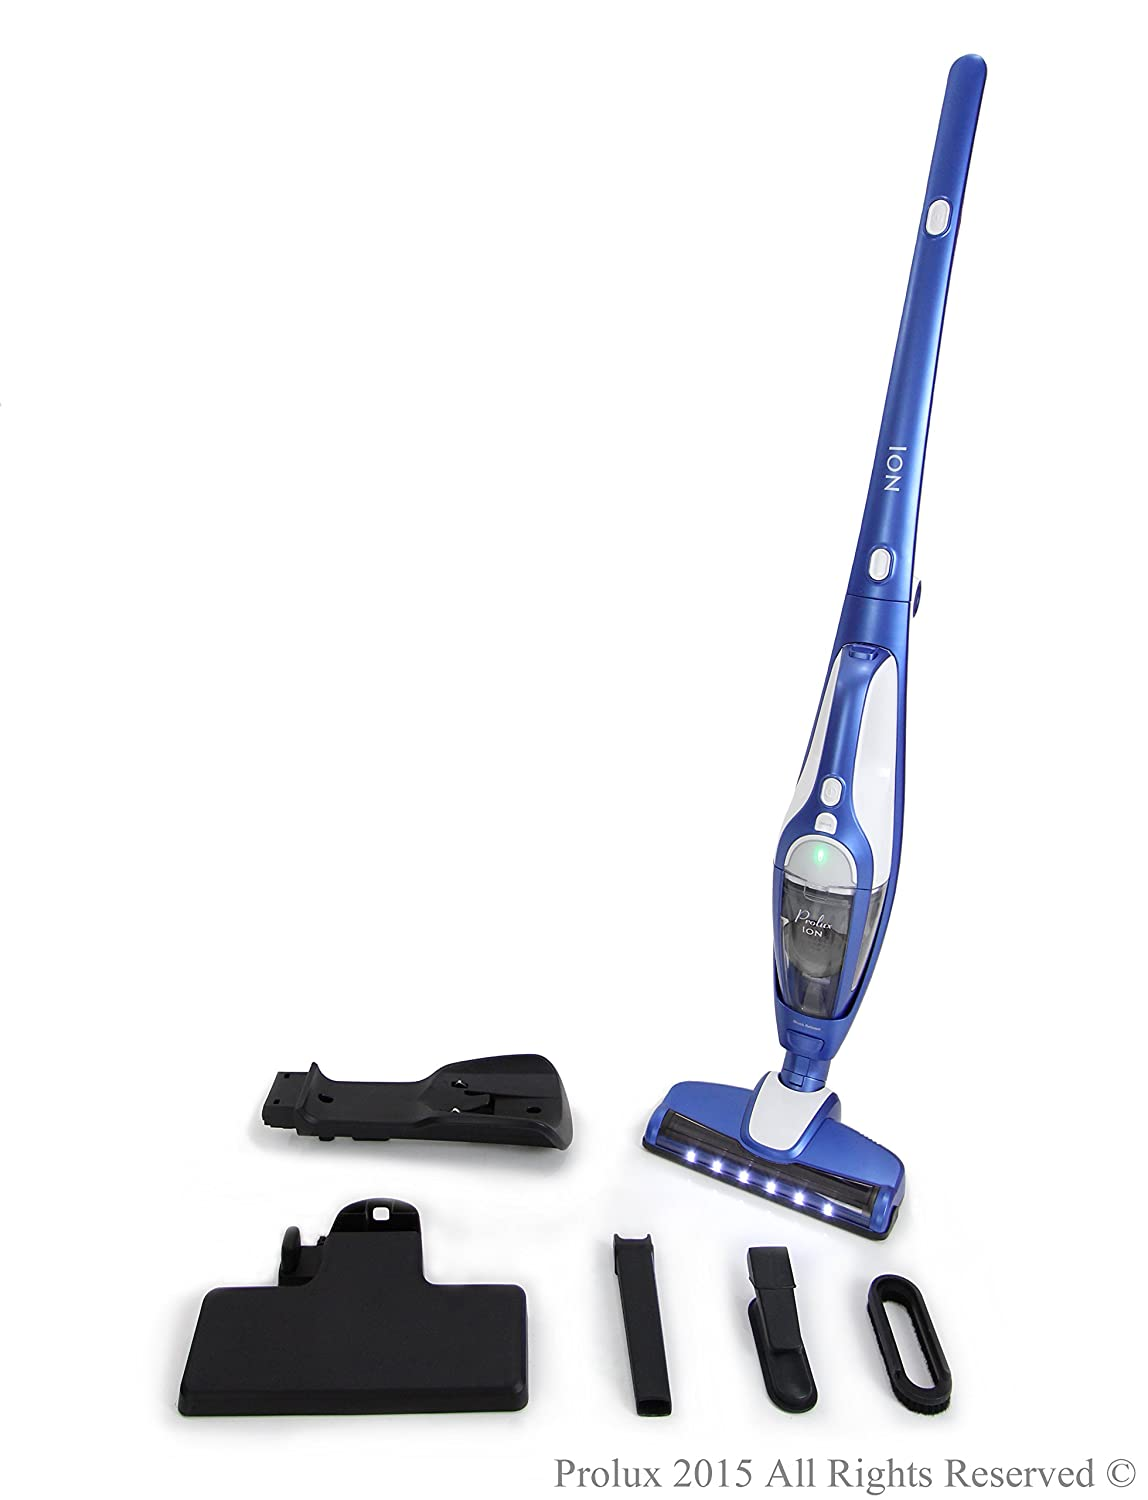 Prolux Ion Battery Powered Bagless Cordless Stick Vac W Work With Lipo Charger This Balancer Can Be Used To 2 3 Extra Filters